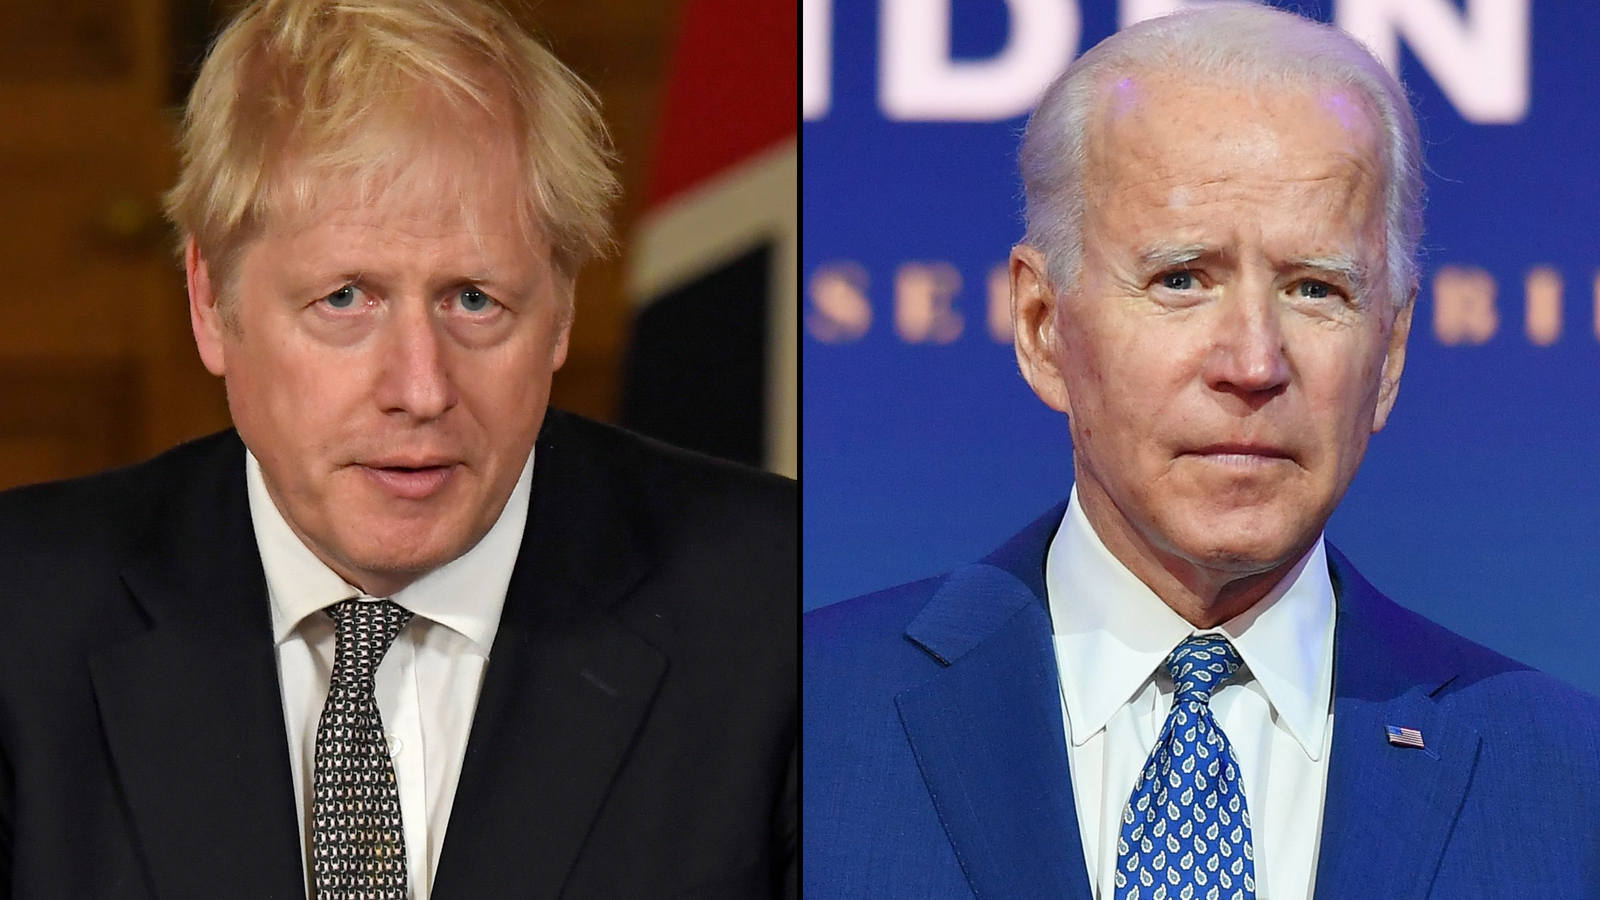 Biden saw echoes of Trump in Boris Johnson. Will it complicate the US-UK 'special relationship'?